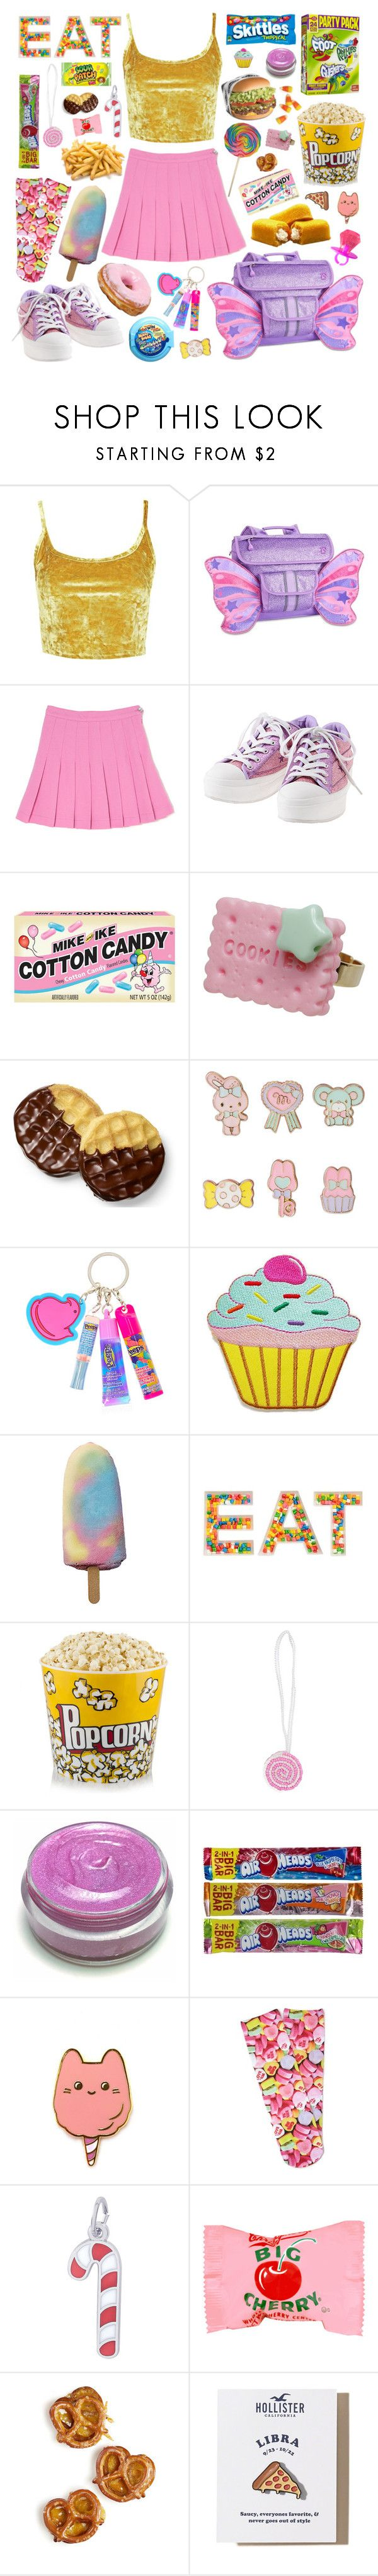 """Junk food cutie pie"" by pastelprincess152 ❤ liked on Polyvore featuring Topshop, claire's, Forever 21, Rembrandt Charms, Junk Food Clothing and Hollister Co."